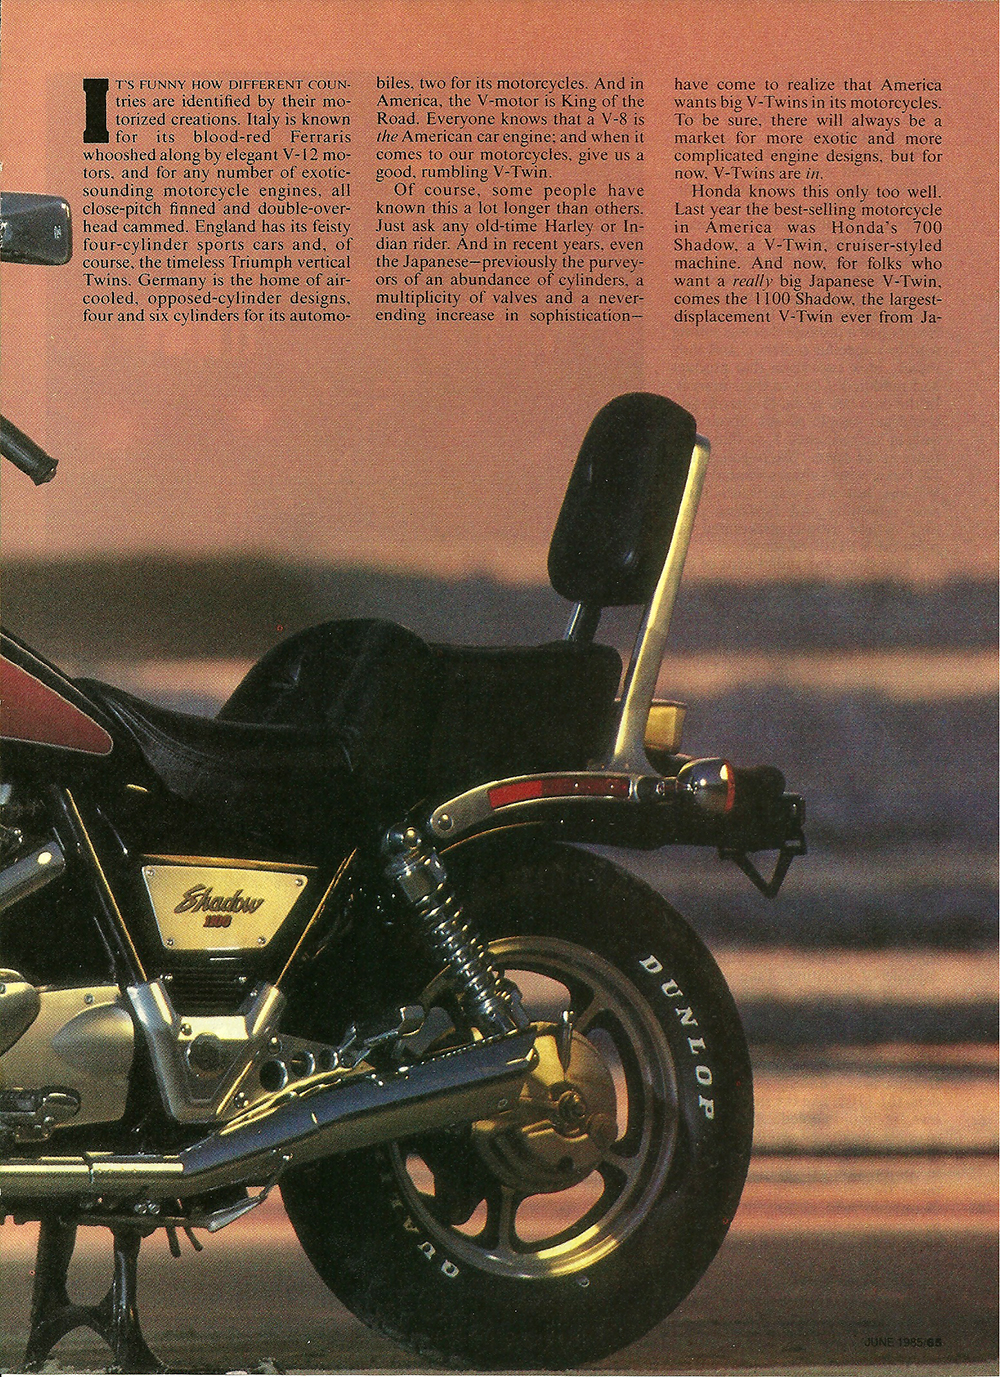 1985 Honda VT1100 Shadow road test 02.jpg